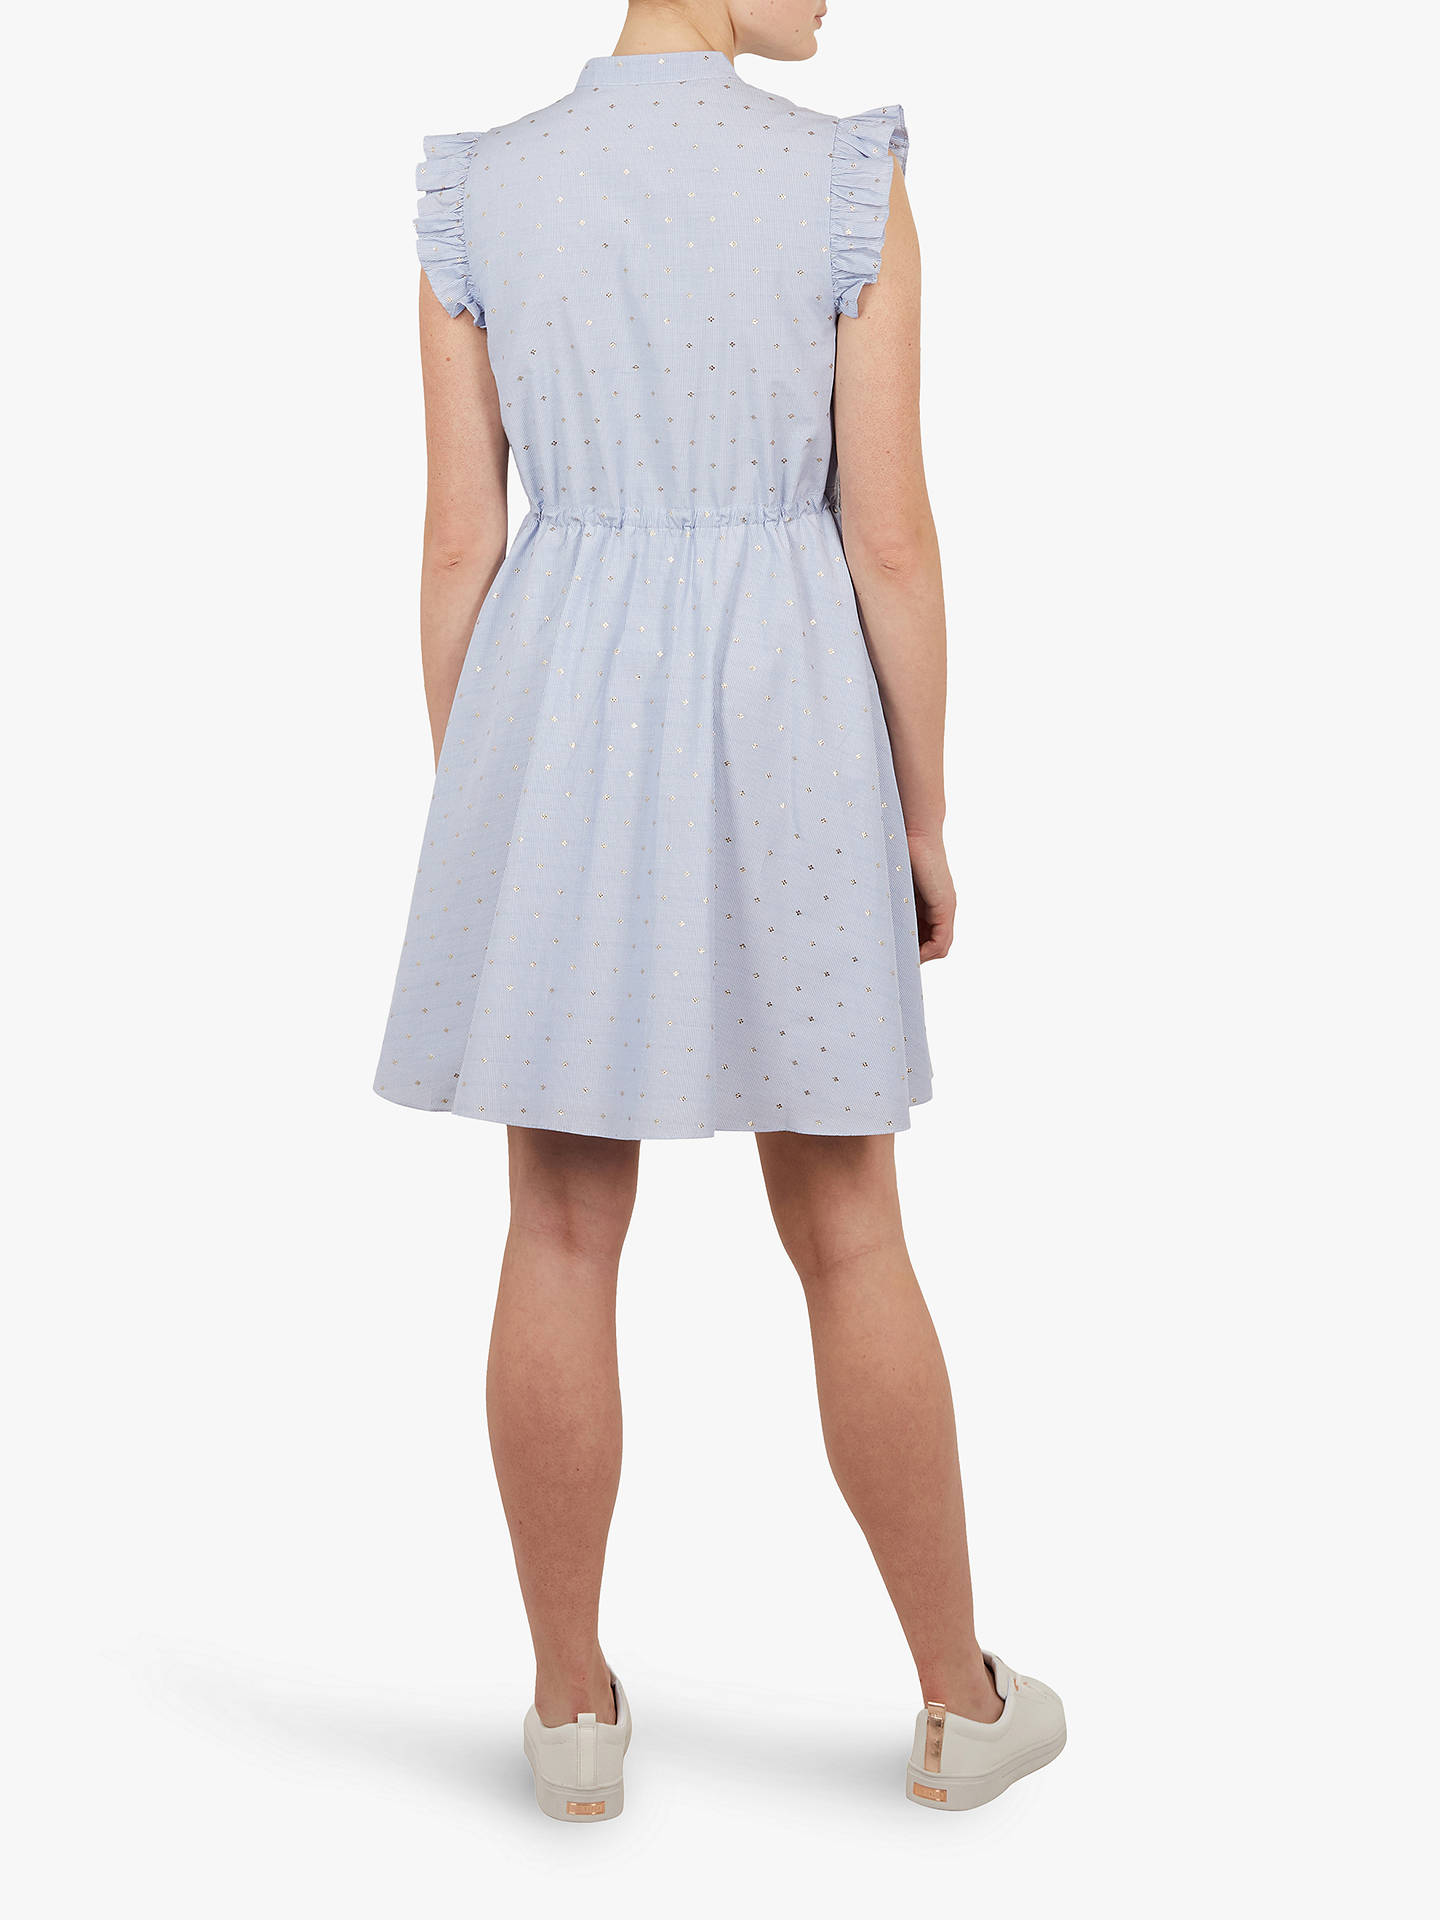 a96022208c7 Ted Baker Beyonc Stand Collar Ruffle Shift Dress, White/Multi